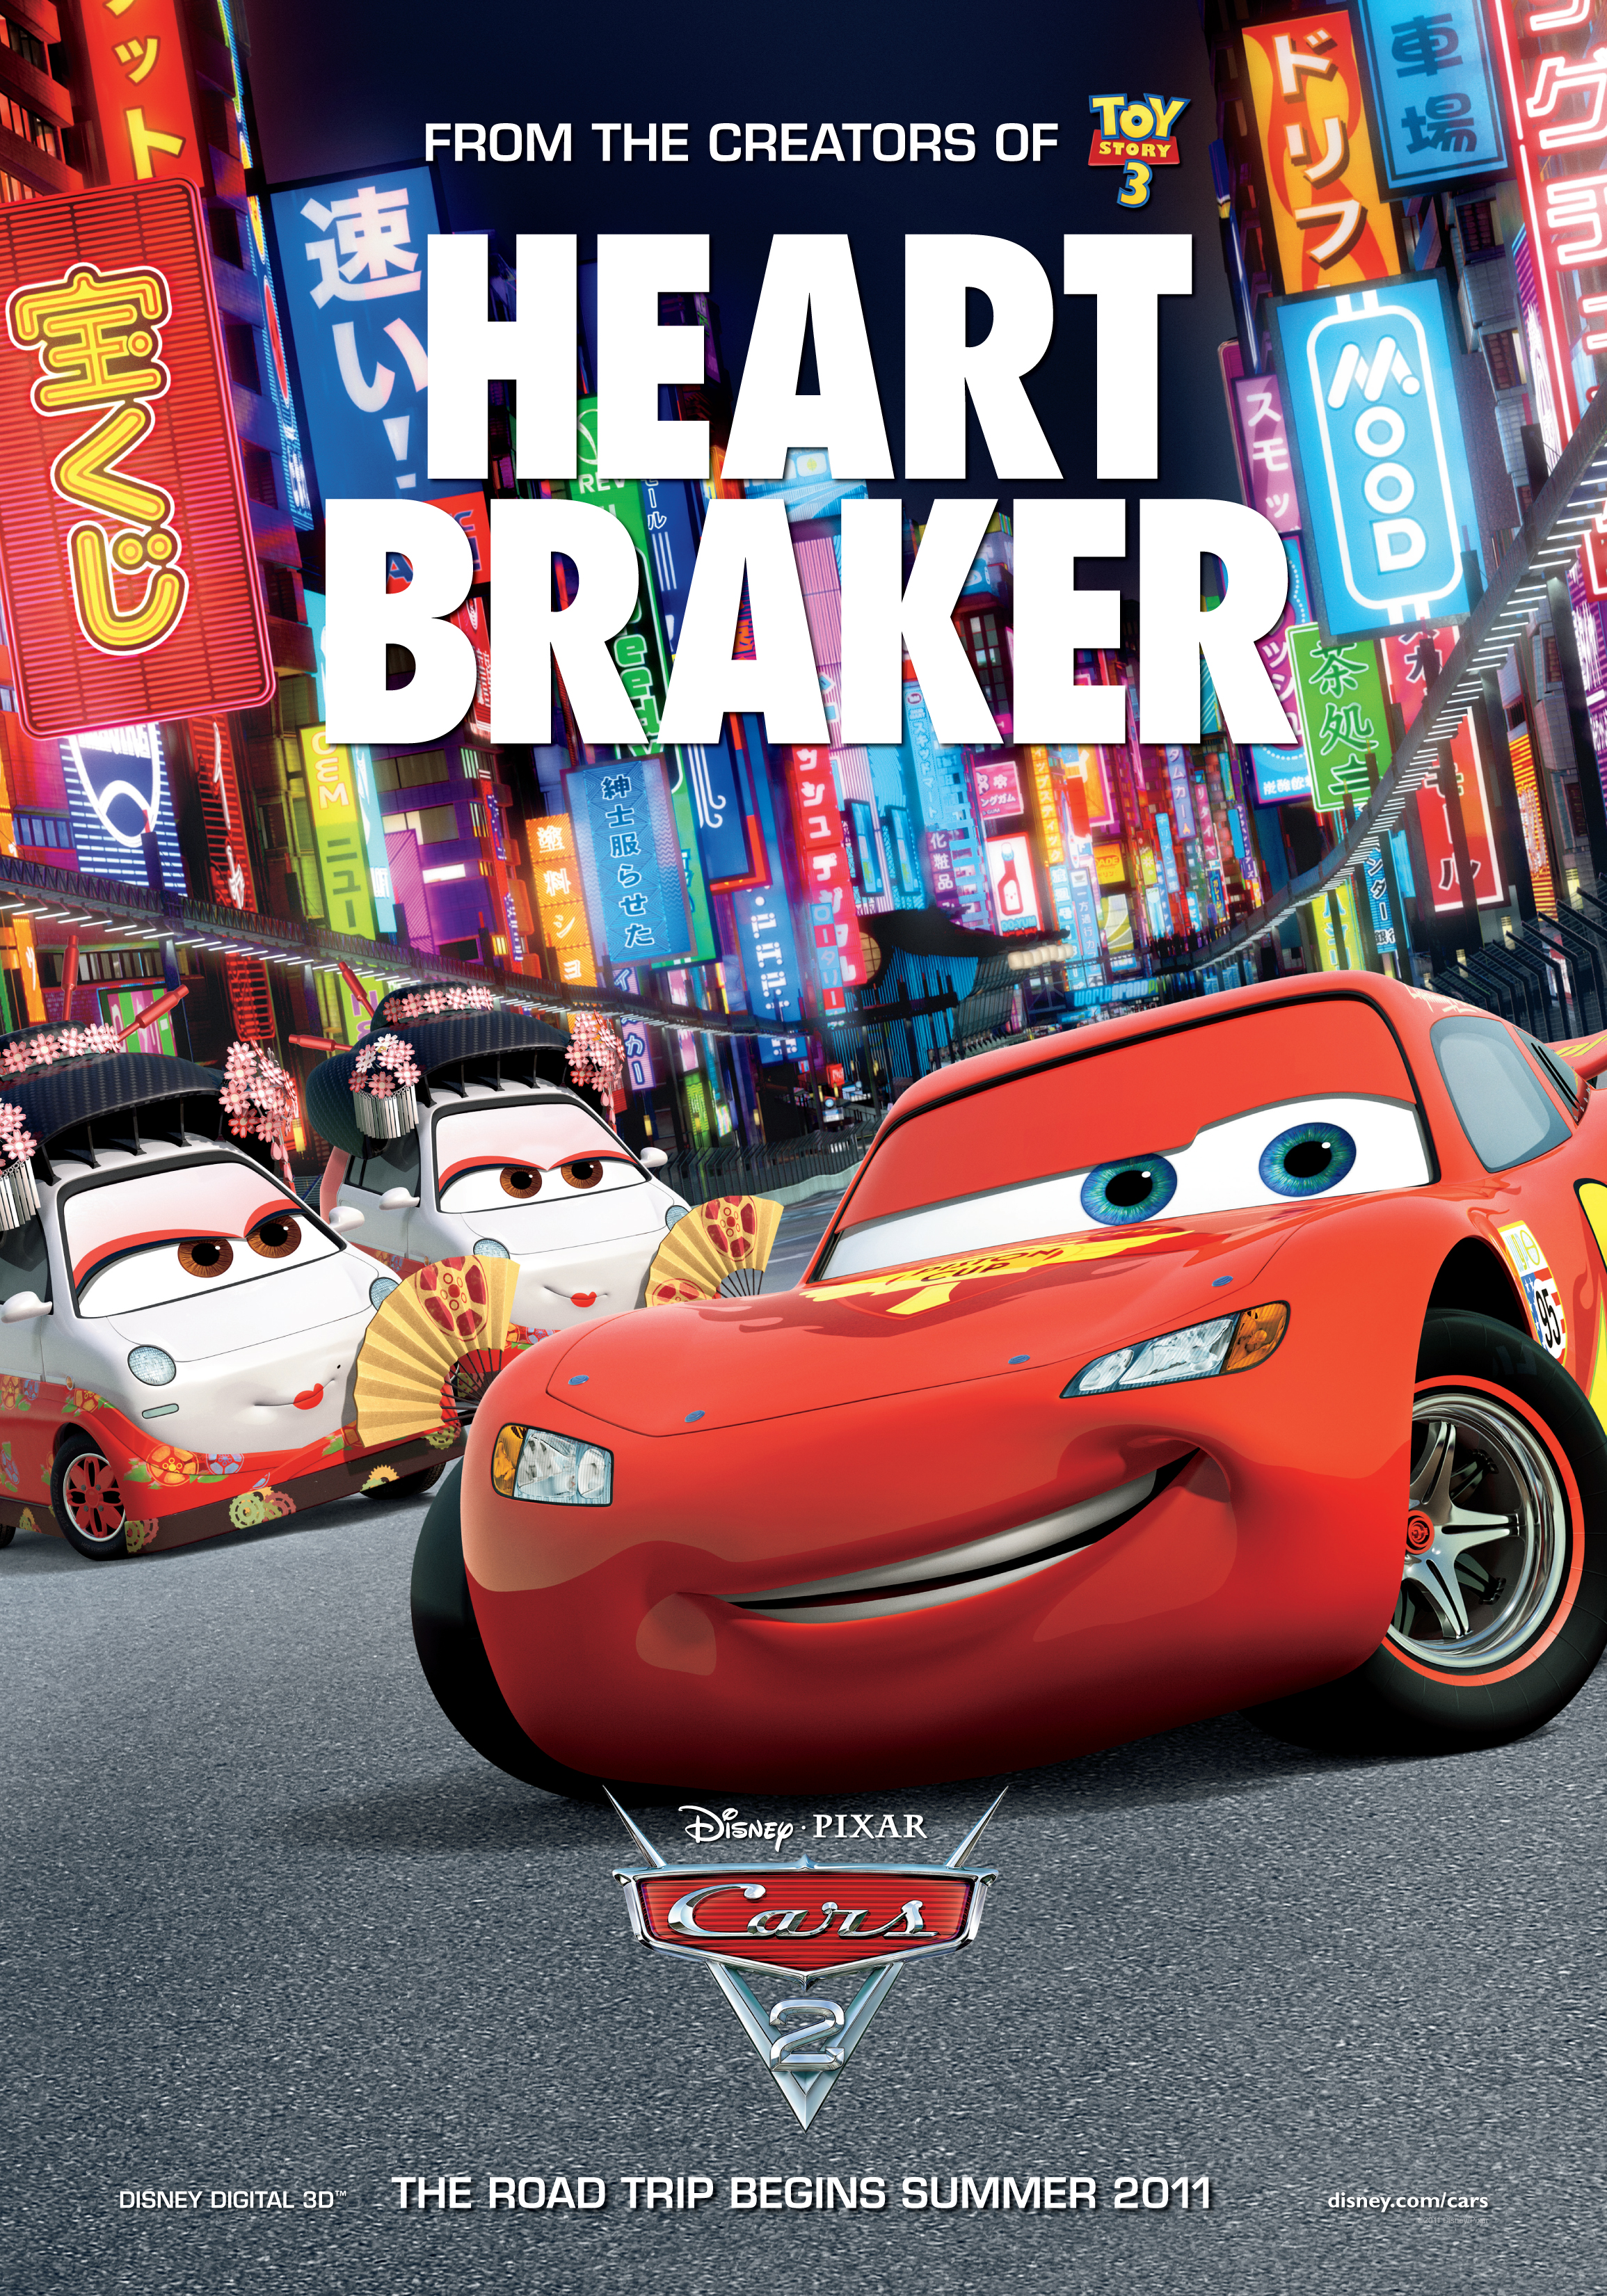 cars pixar disney poster fun movie activities 2006 posters mcqueen cars2 lightning prix grand japan craft film fisher trailer speedway